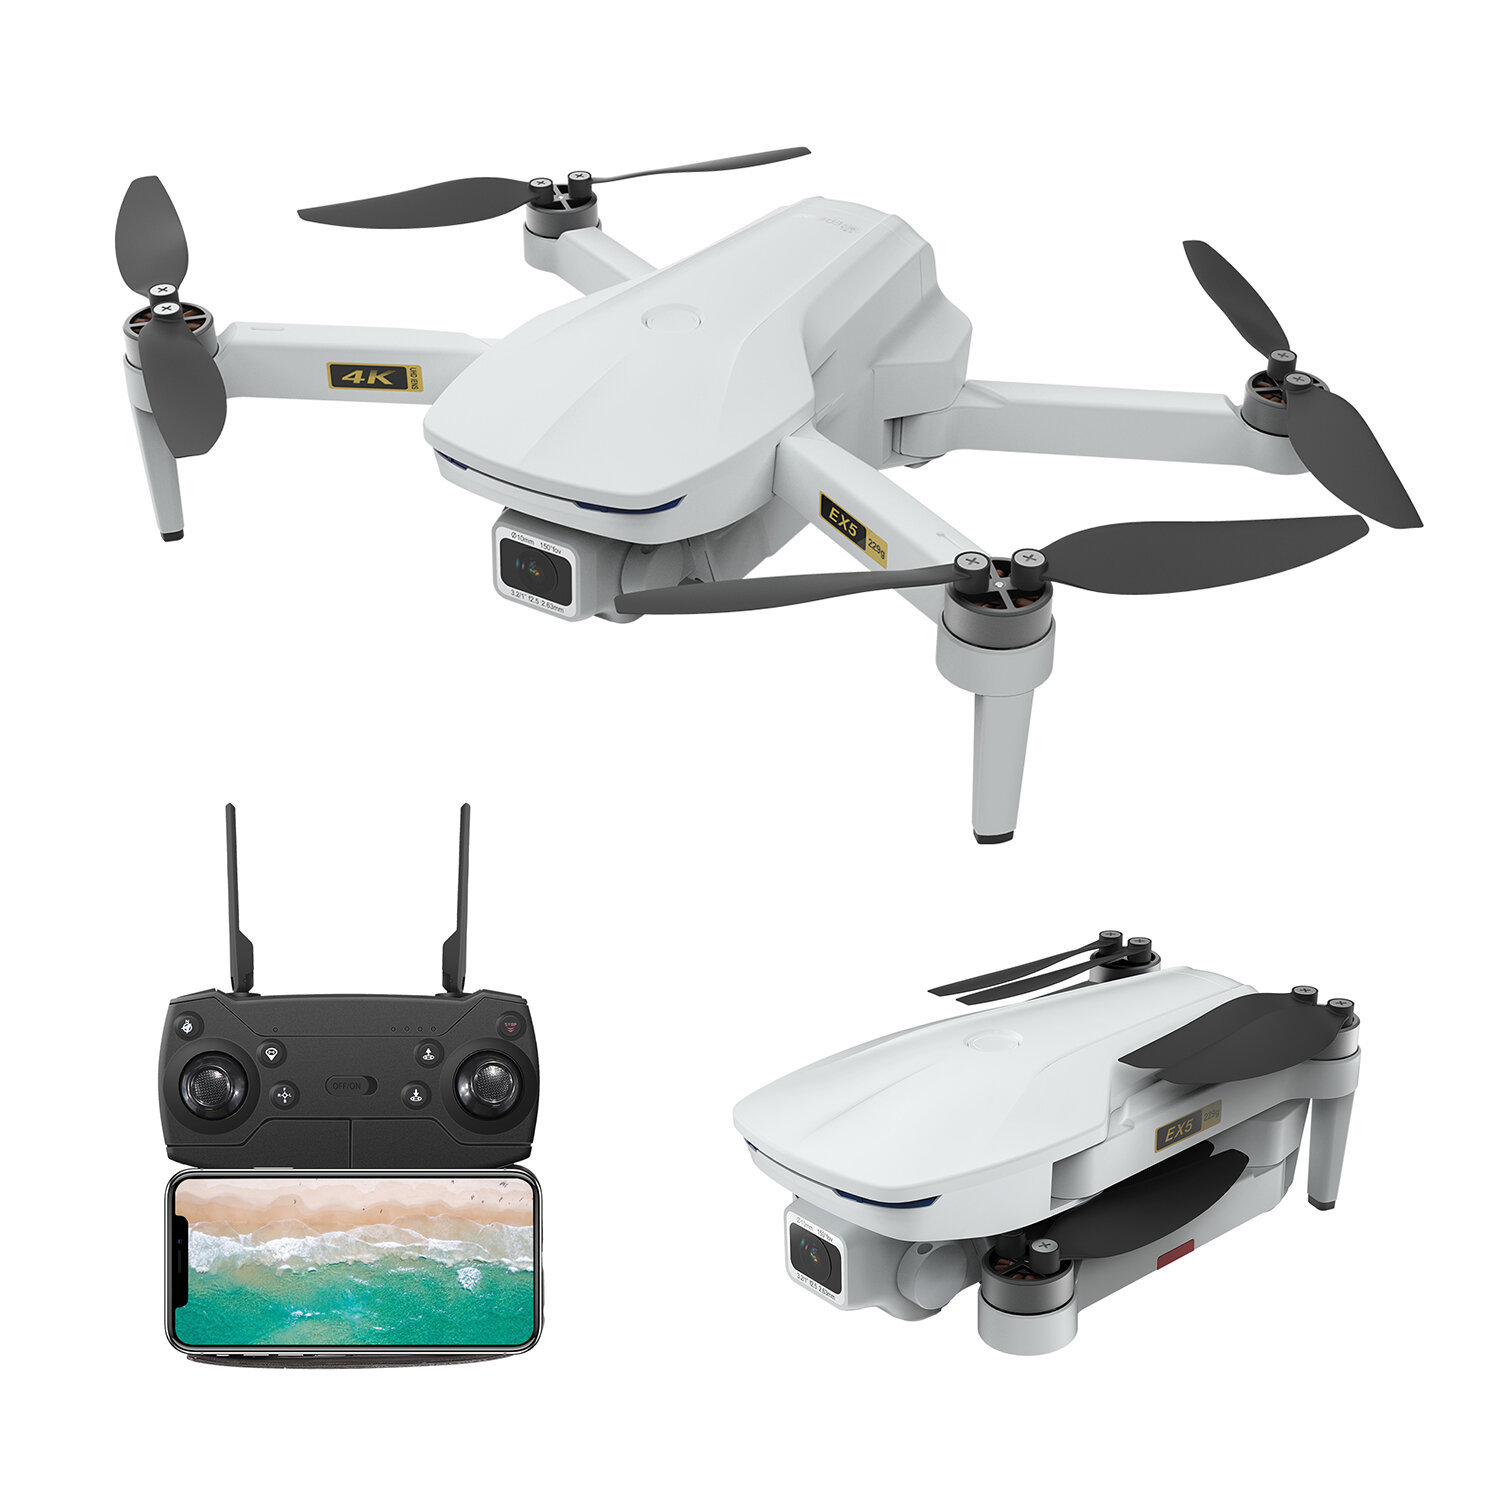 Eachine EX5 5G WIFI 1KM FPV GPS With 4K HD Camera Servo Gimbal 30mins Flight Time 229g Foldable RC Drone Quadcopter RTF